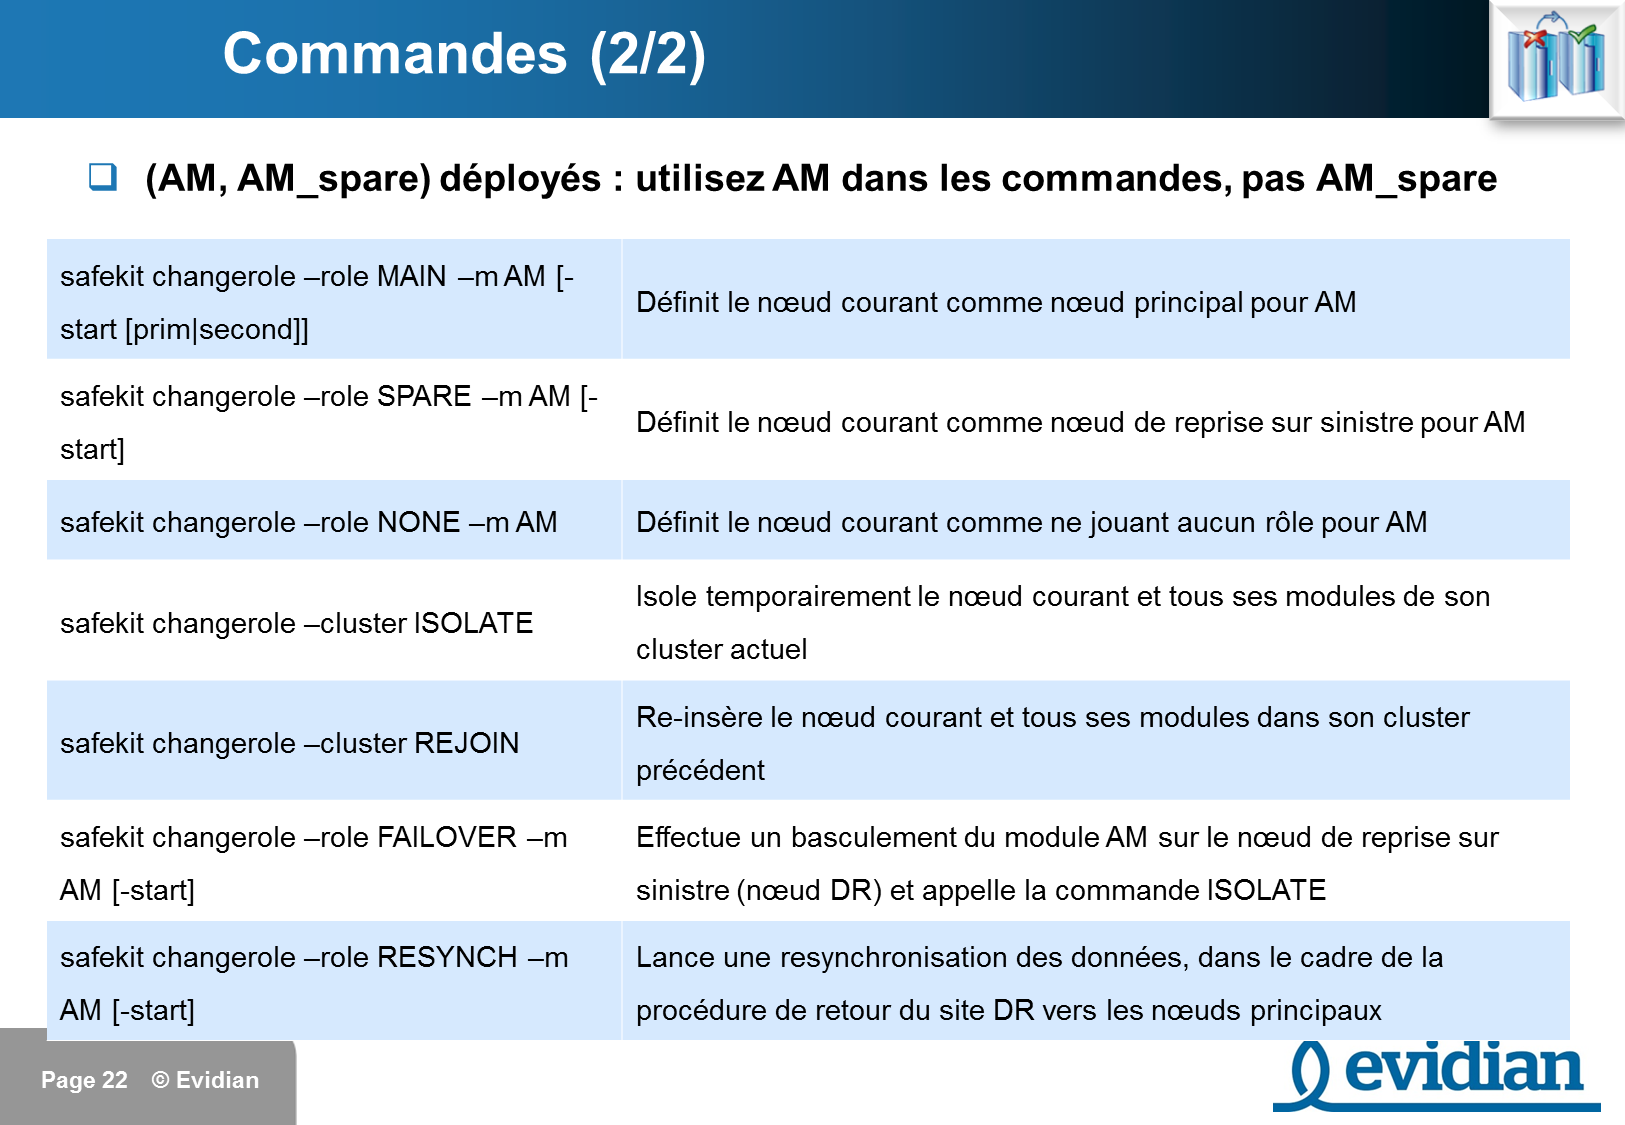 Formation à Evidian SafeKit - Réplication à 3 nœuds  - Slide 22